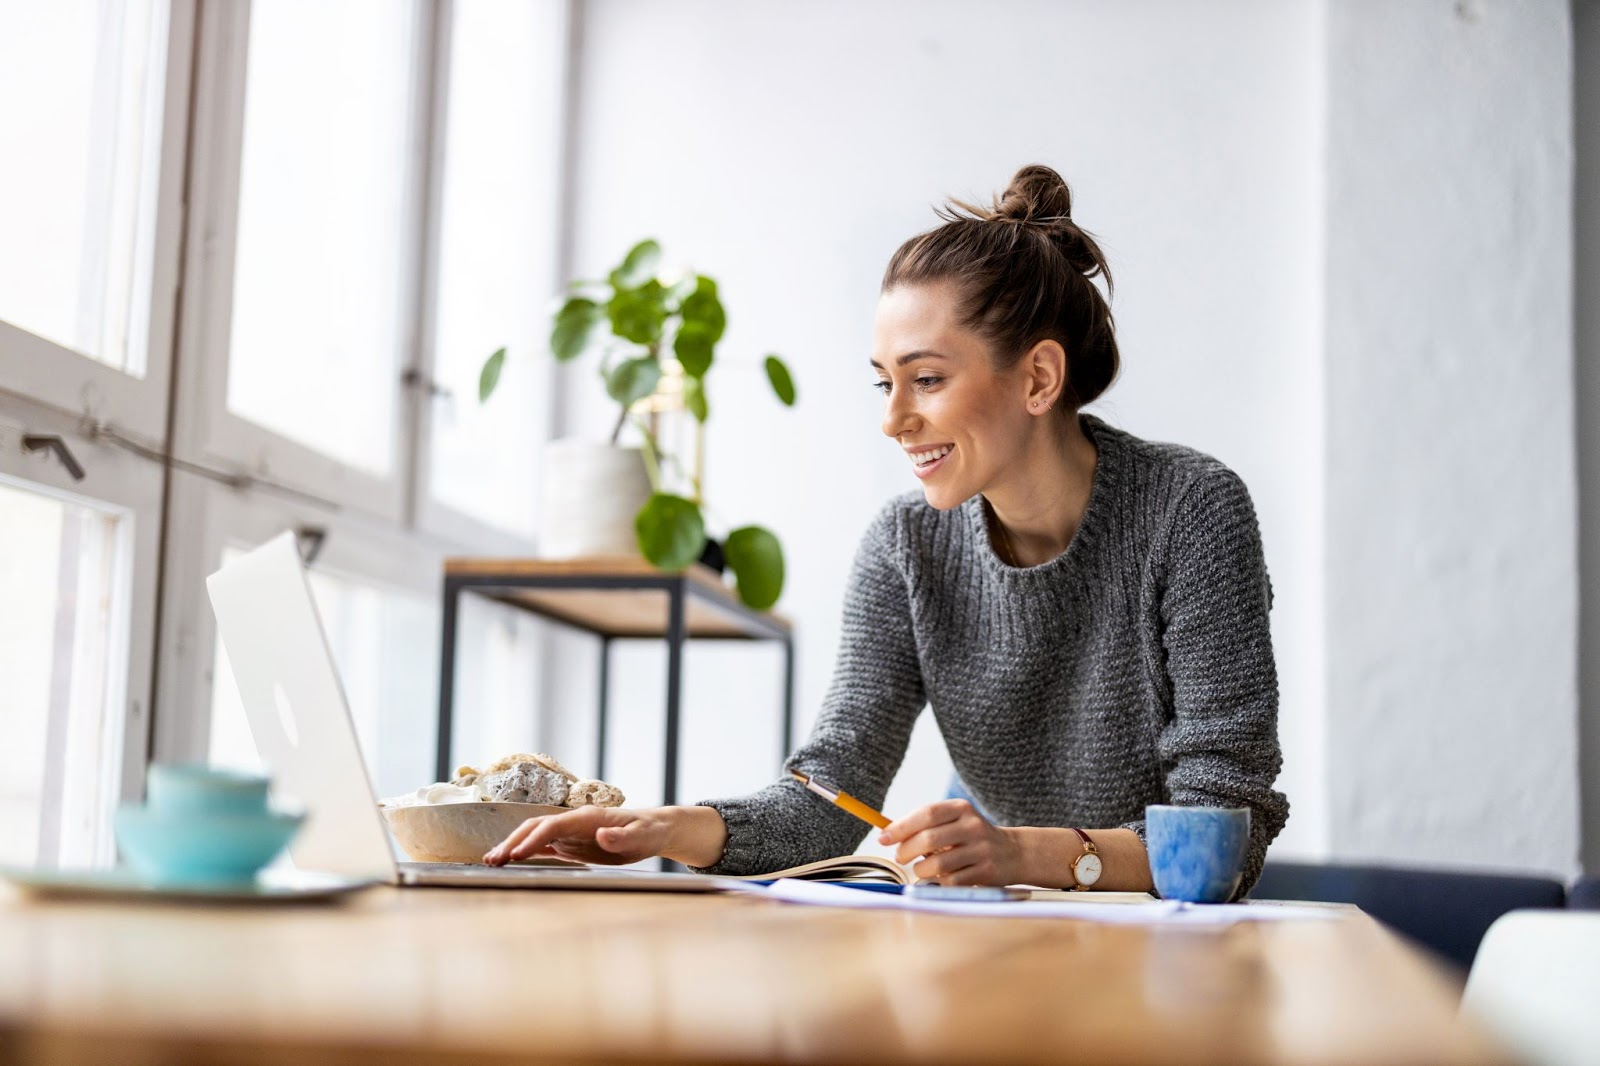 A smiling woman works on her laptop